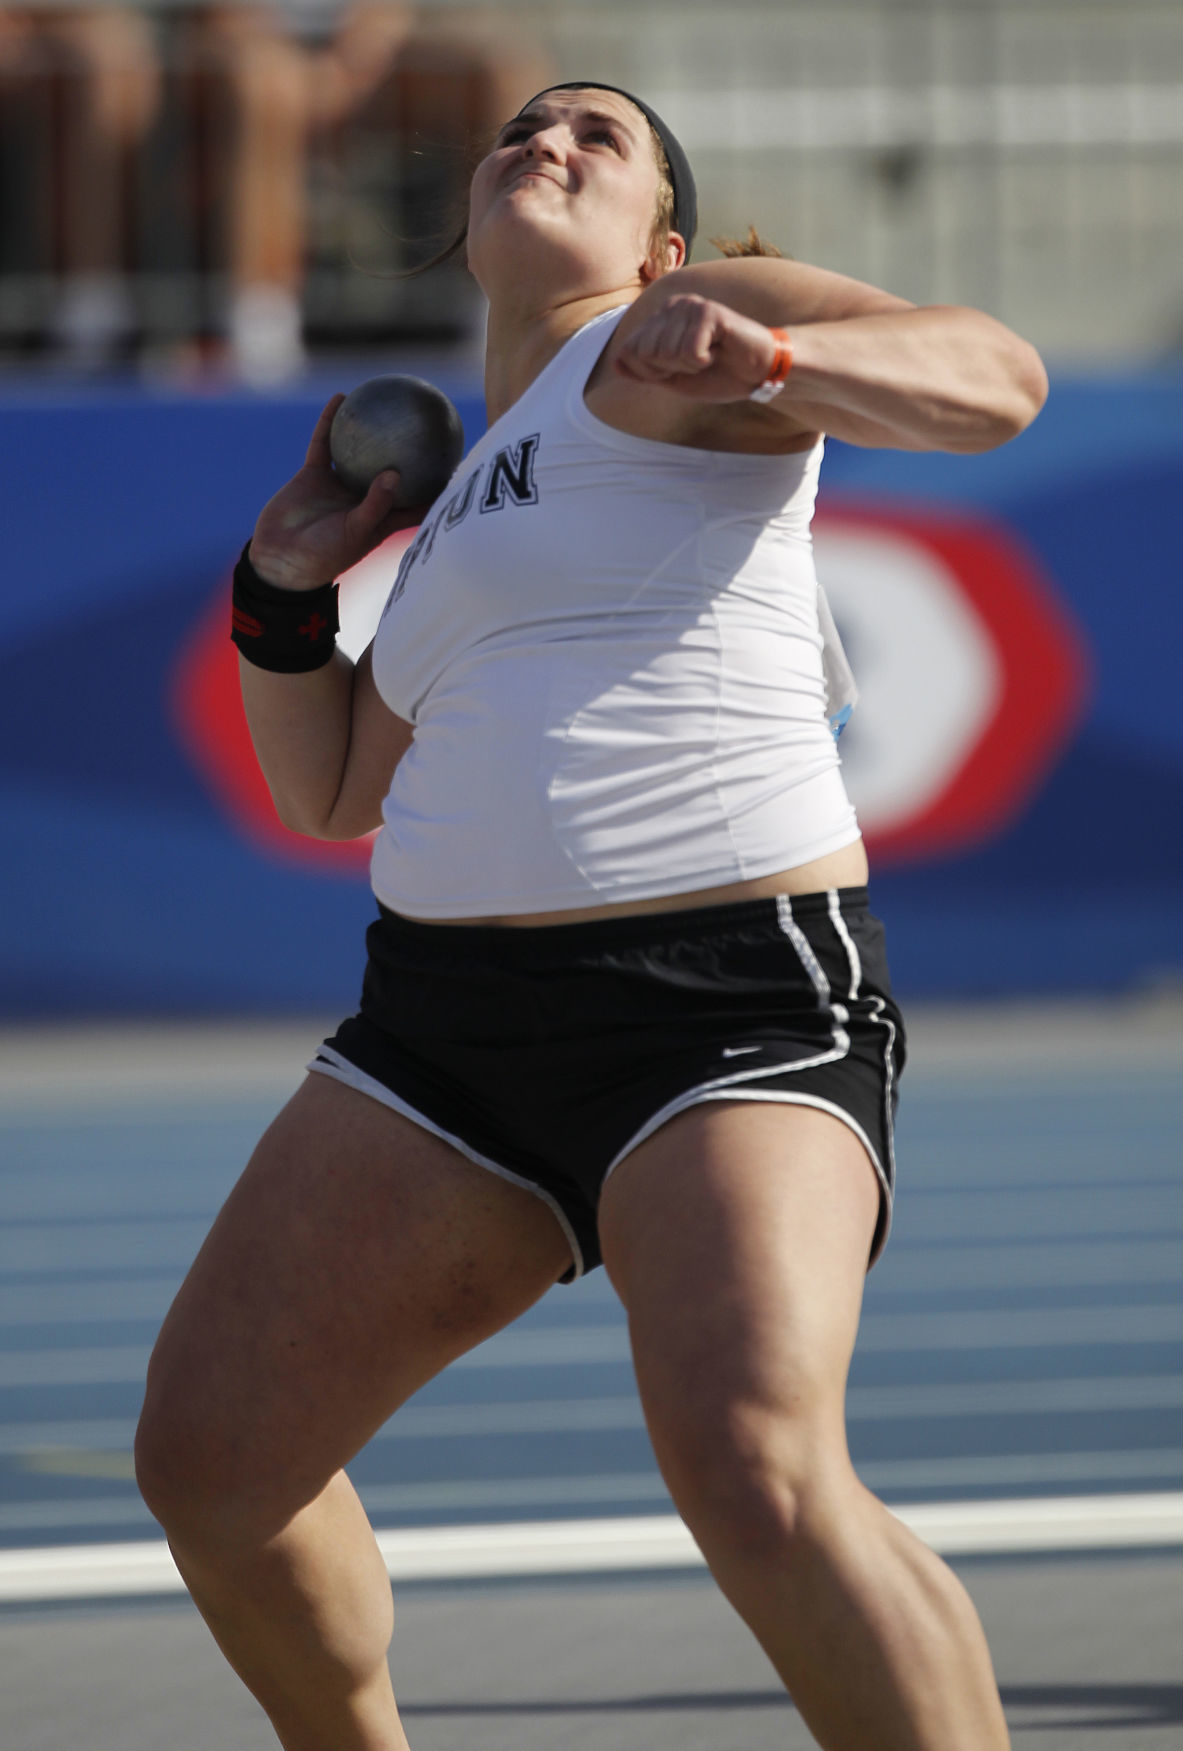 042618mp-Drake-Relays-Girls-Shot-Put-1